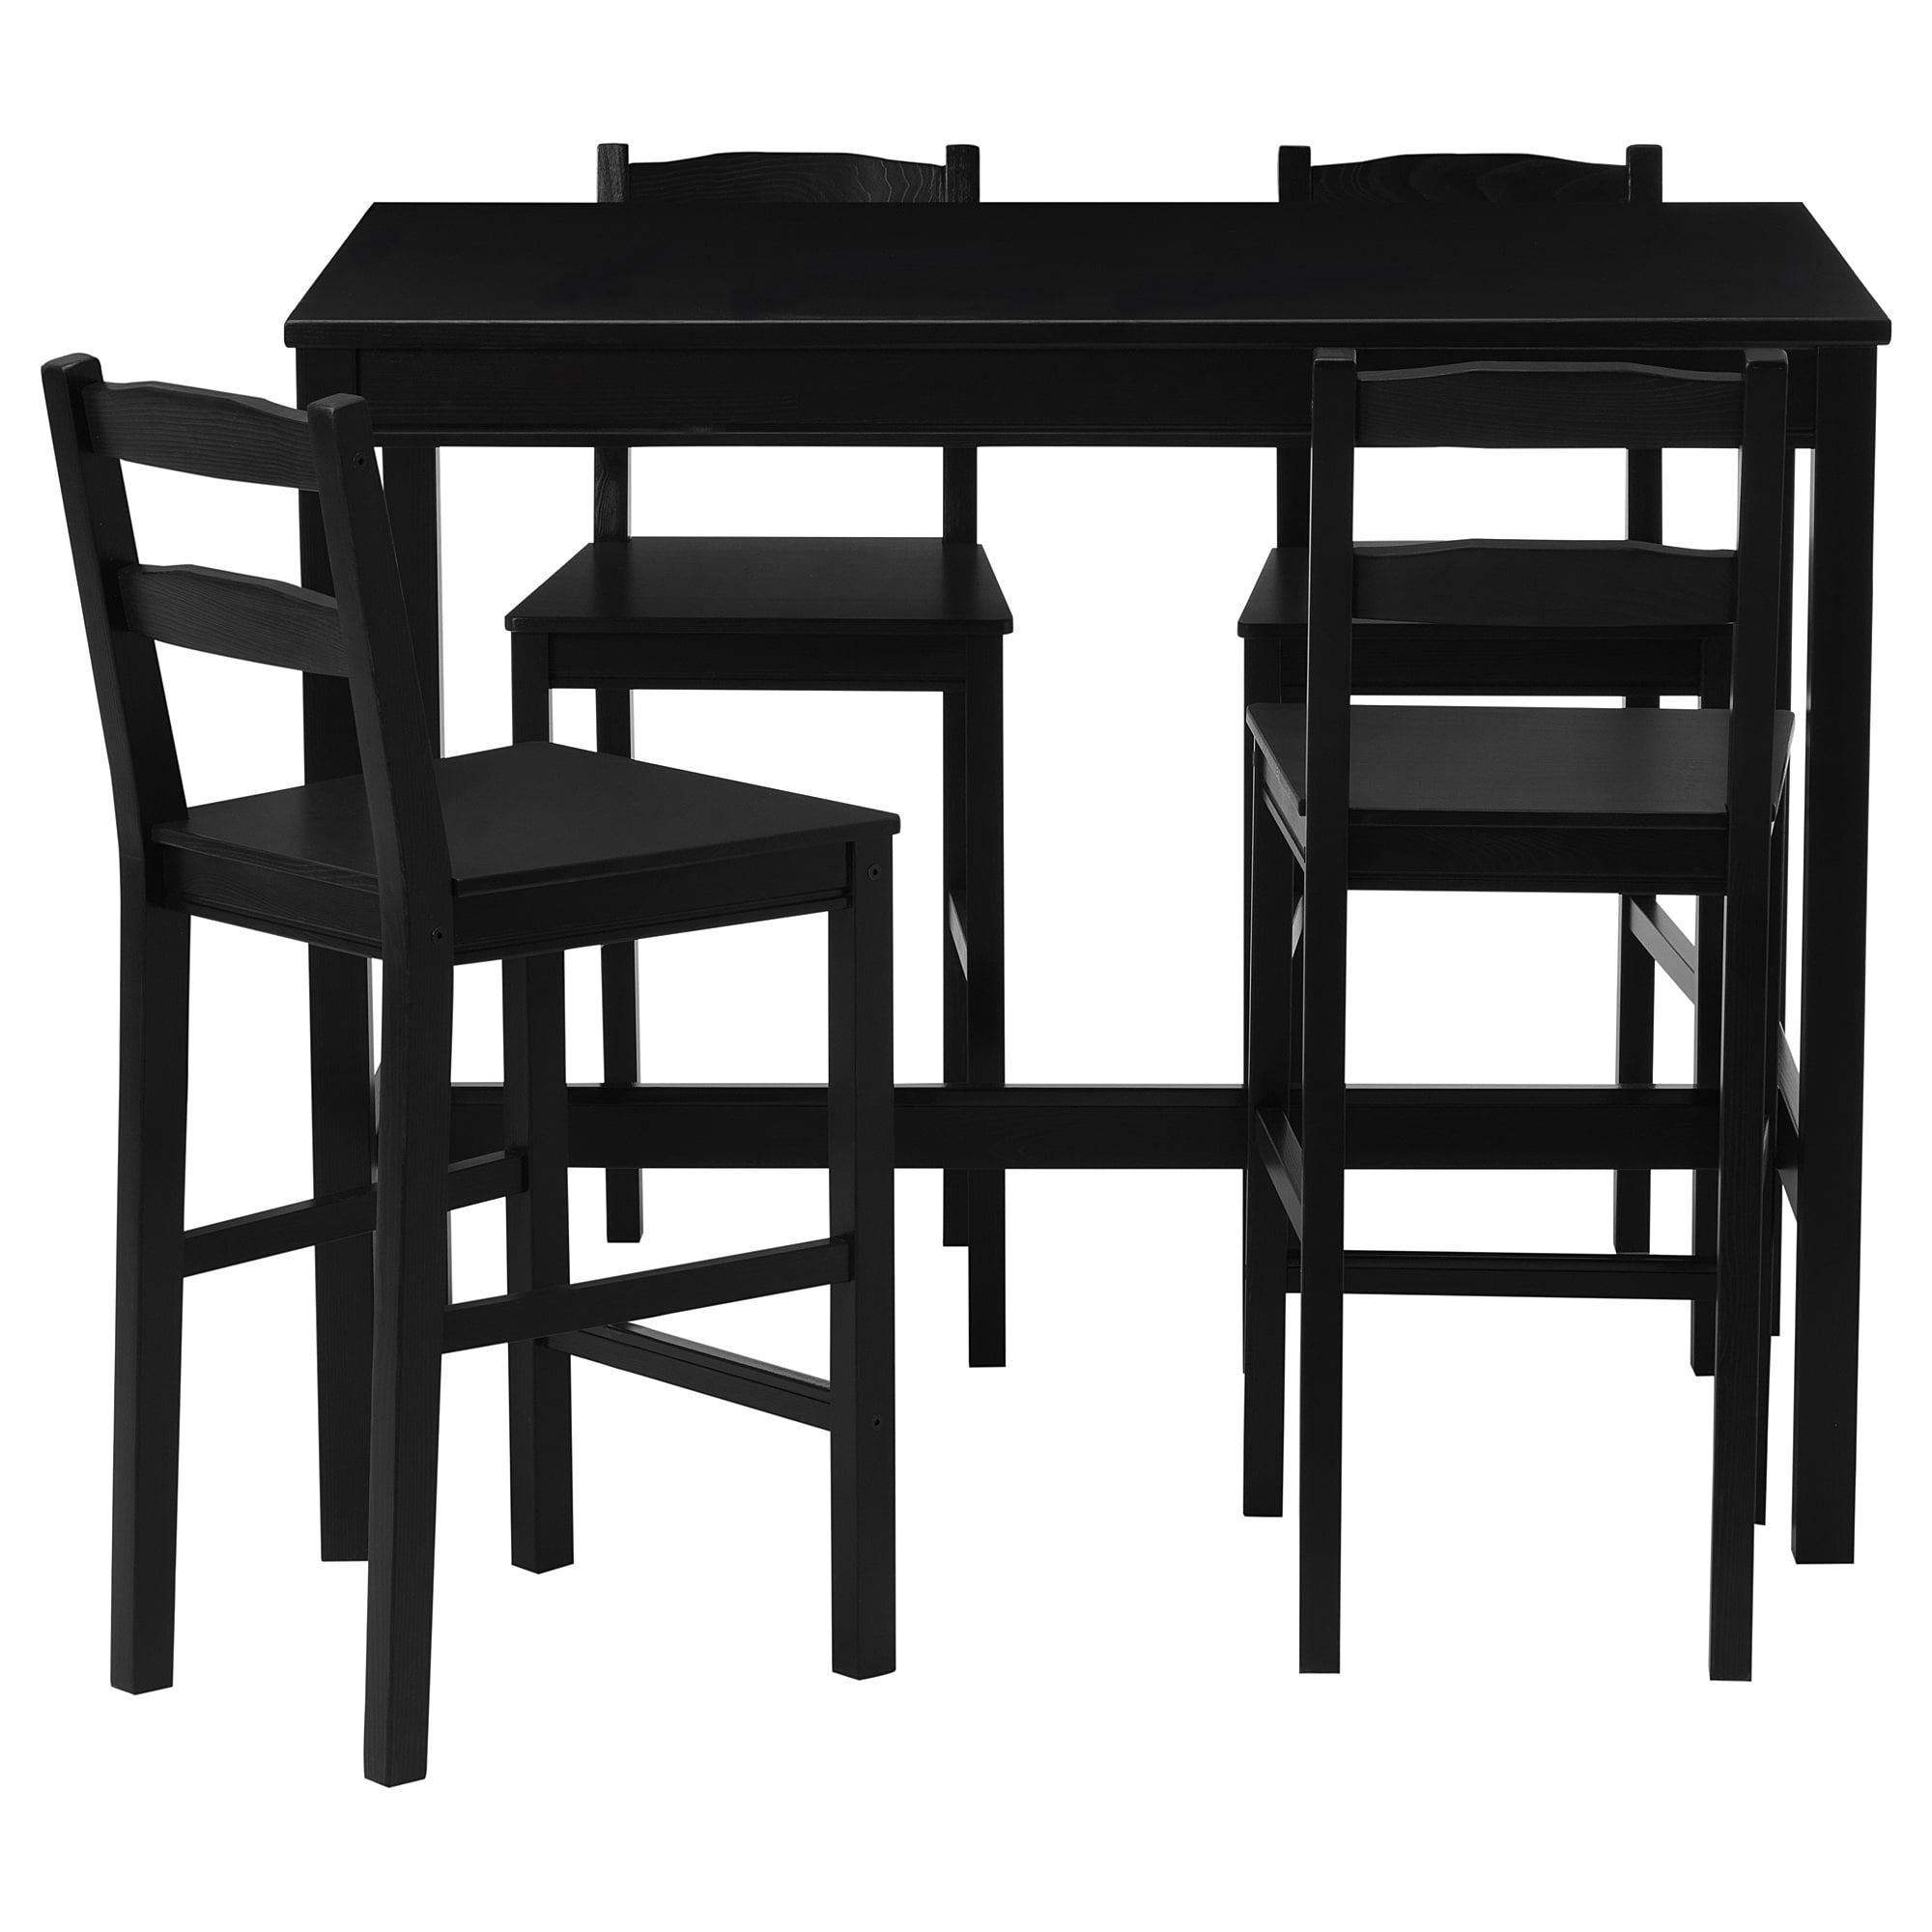 Jokkmokk Bar Table And 4 Bar Stools Black Brown Pub Table And Chairs Bar Table Bar Stools